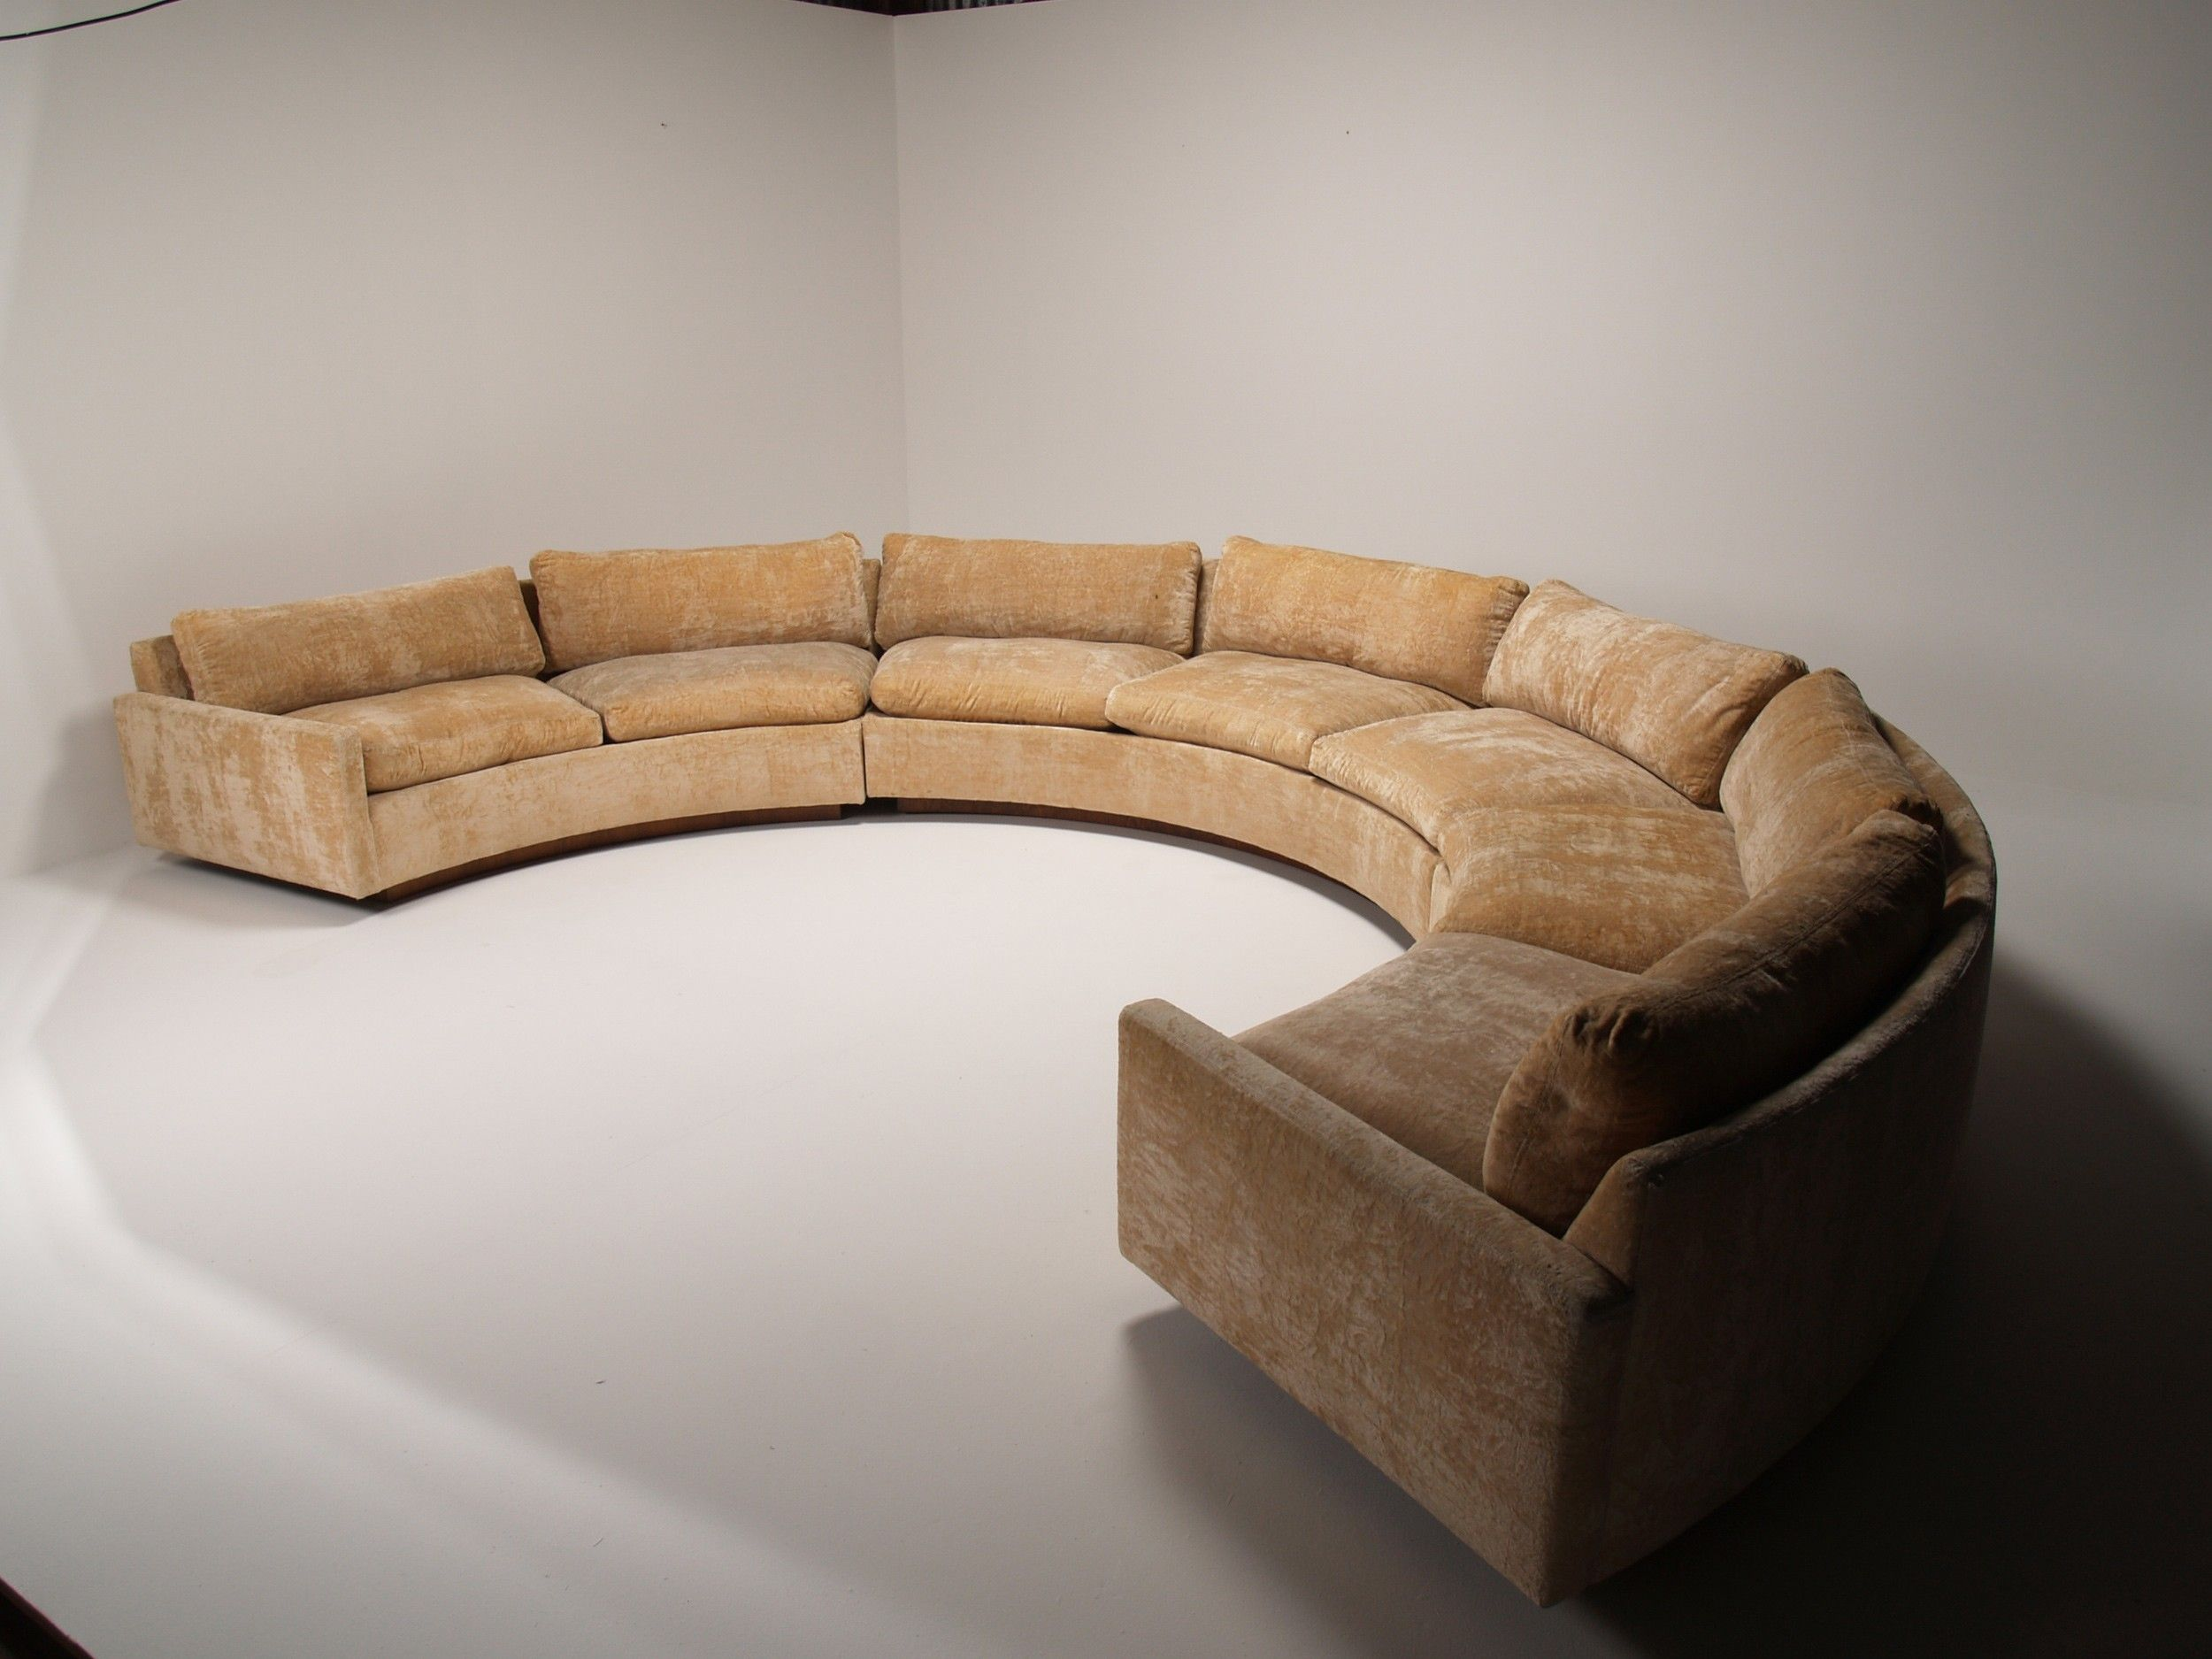 Circular Loveseat Sofa Curved Sectional Small Couch